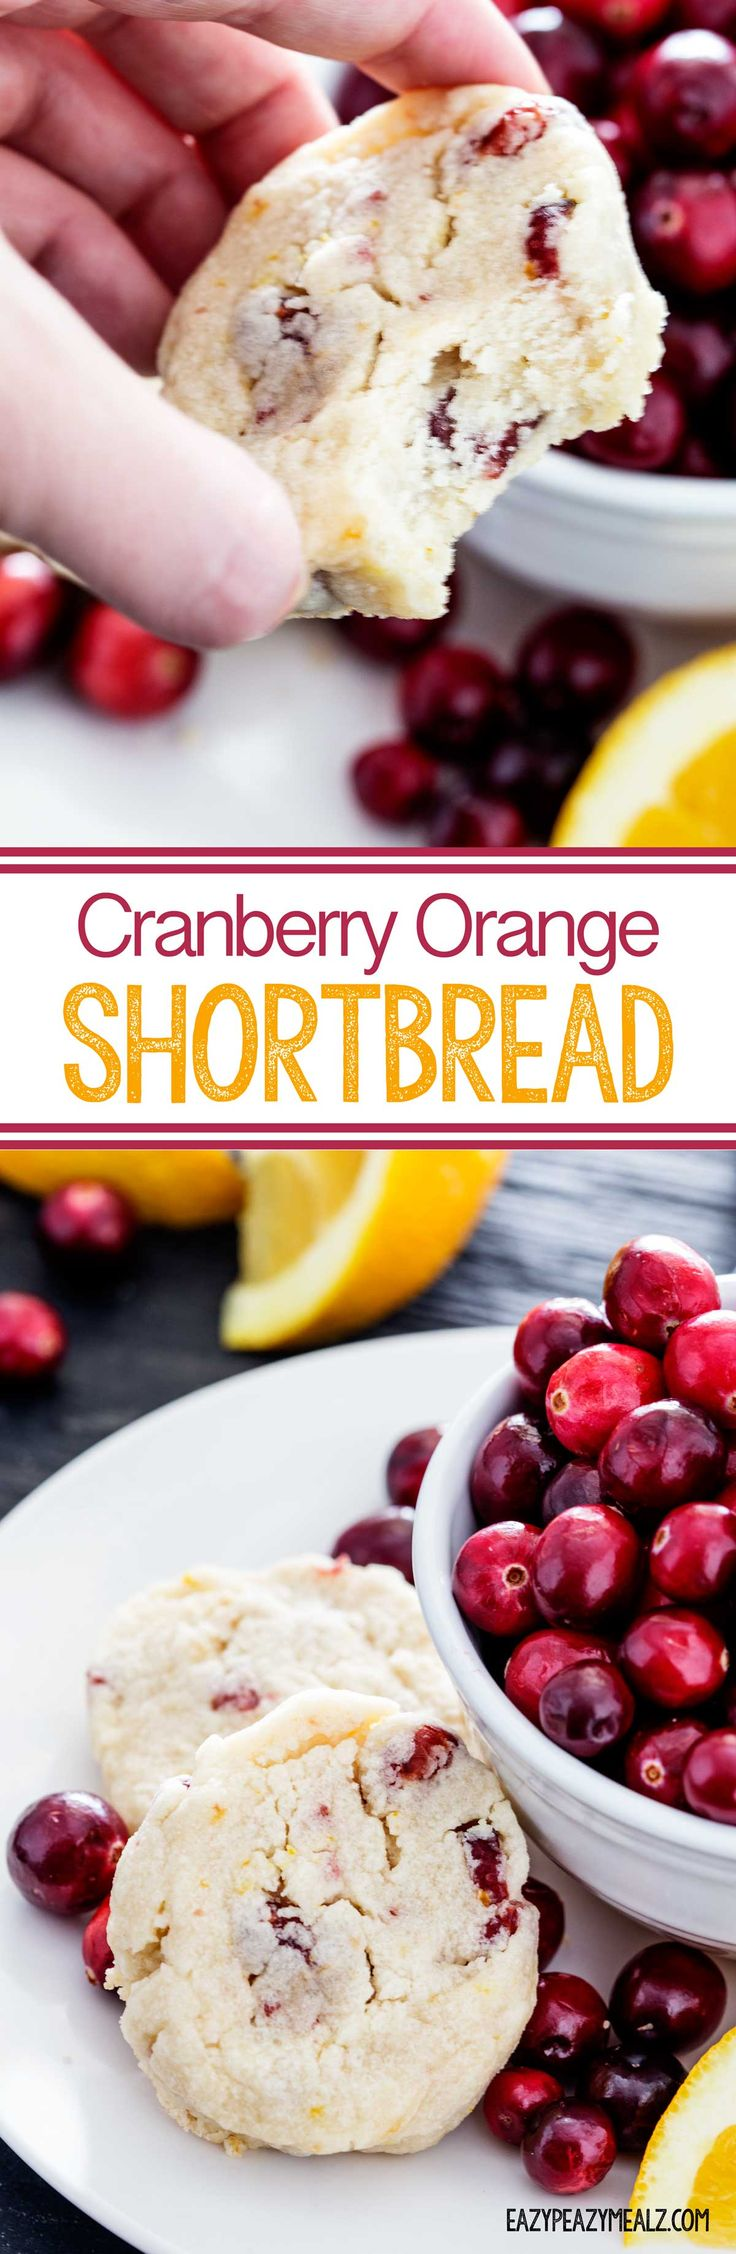 Cranberry Orange Shortbread is flavorful and easy to make, and a great treat to make ahead and freeze to help you avoid some of the chaos during the holidays.  #ad - Eazy Peazy Mealz